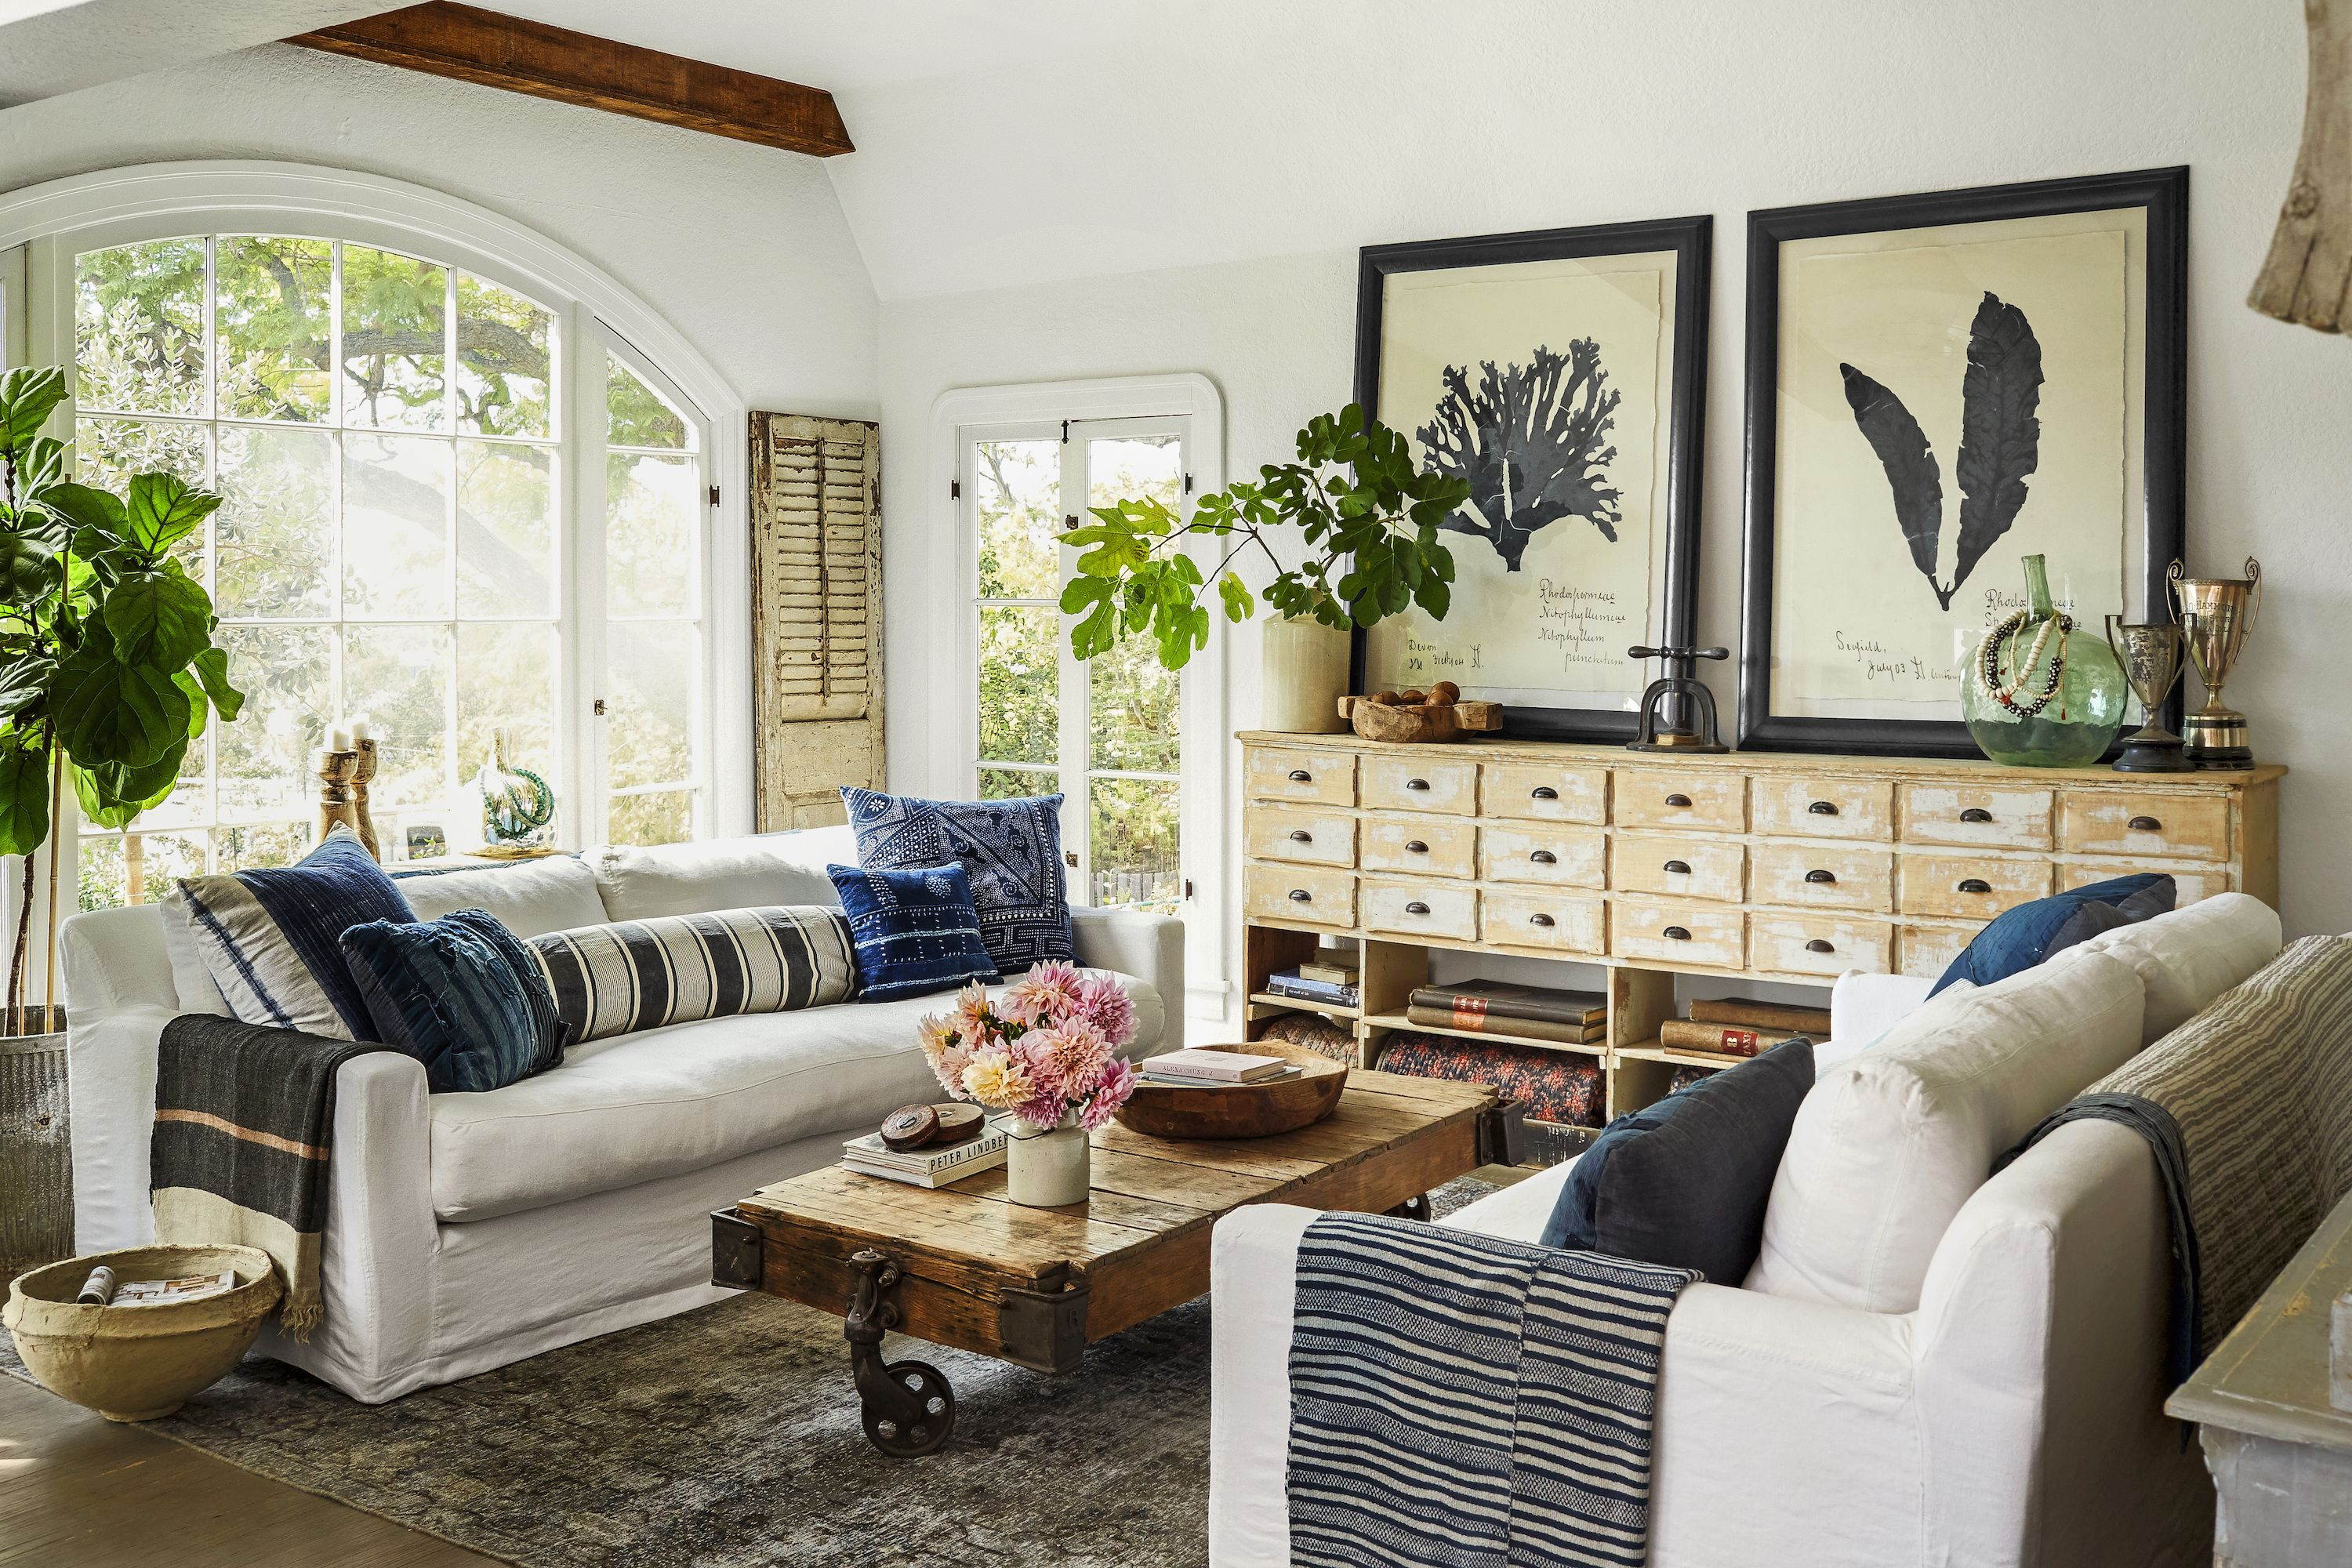 medium resolution of 10 design secrets for a calm and happy home how to create a peaceful interior design peaceful interior design